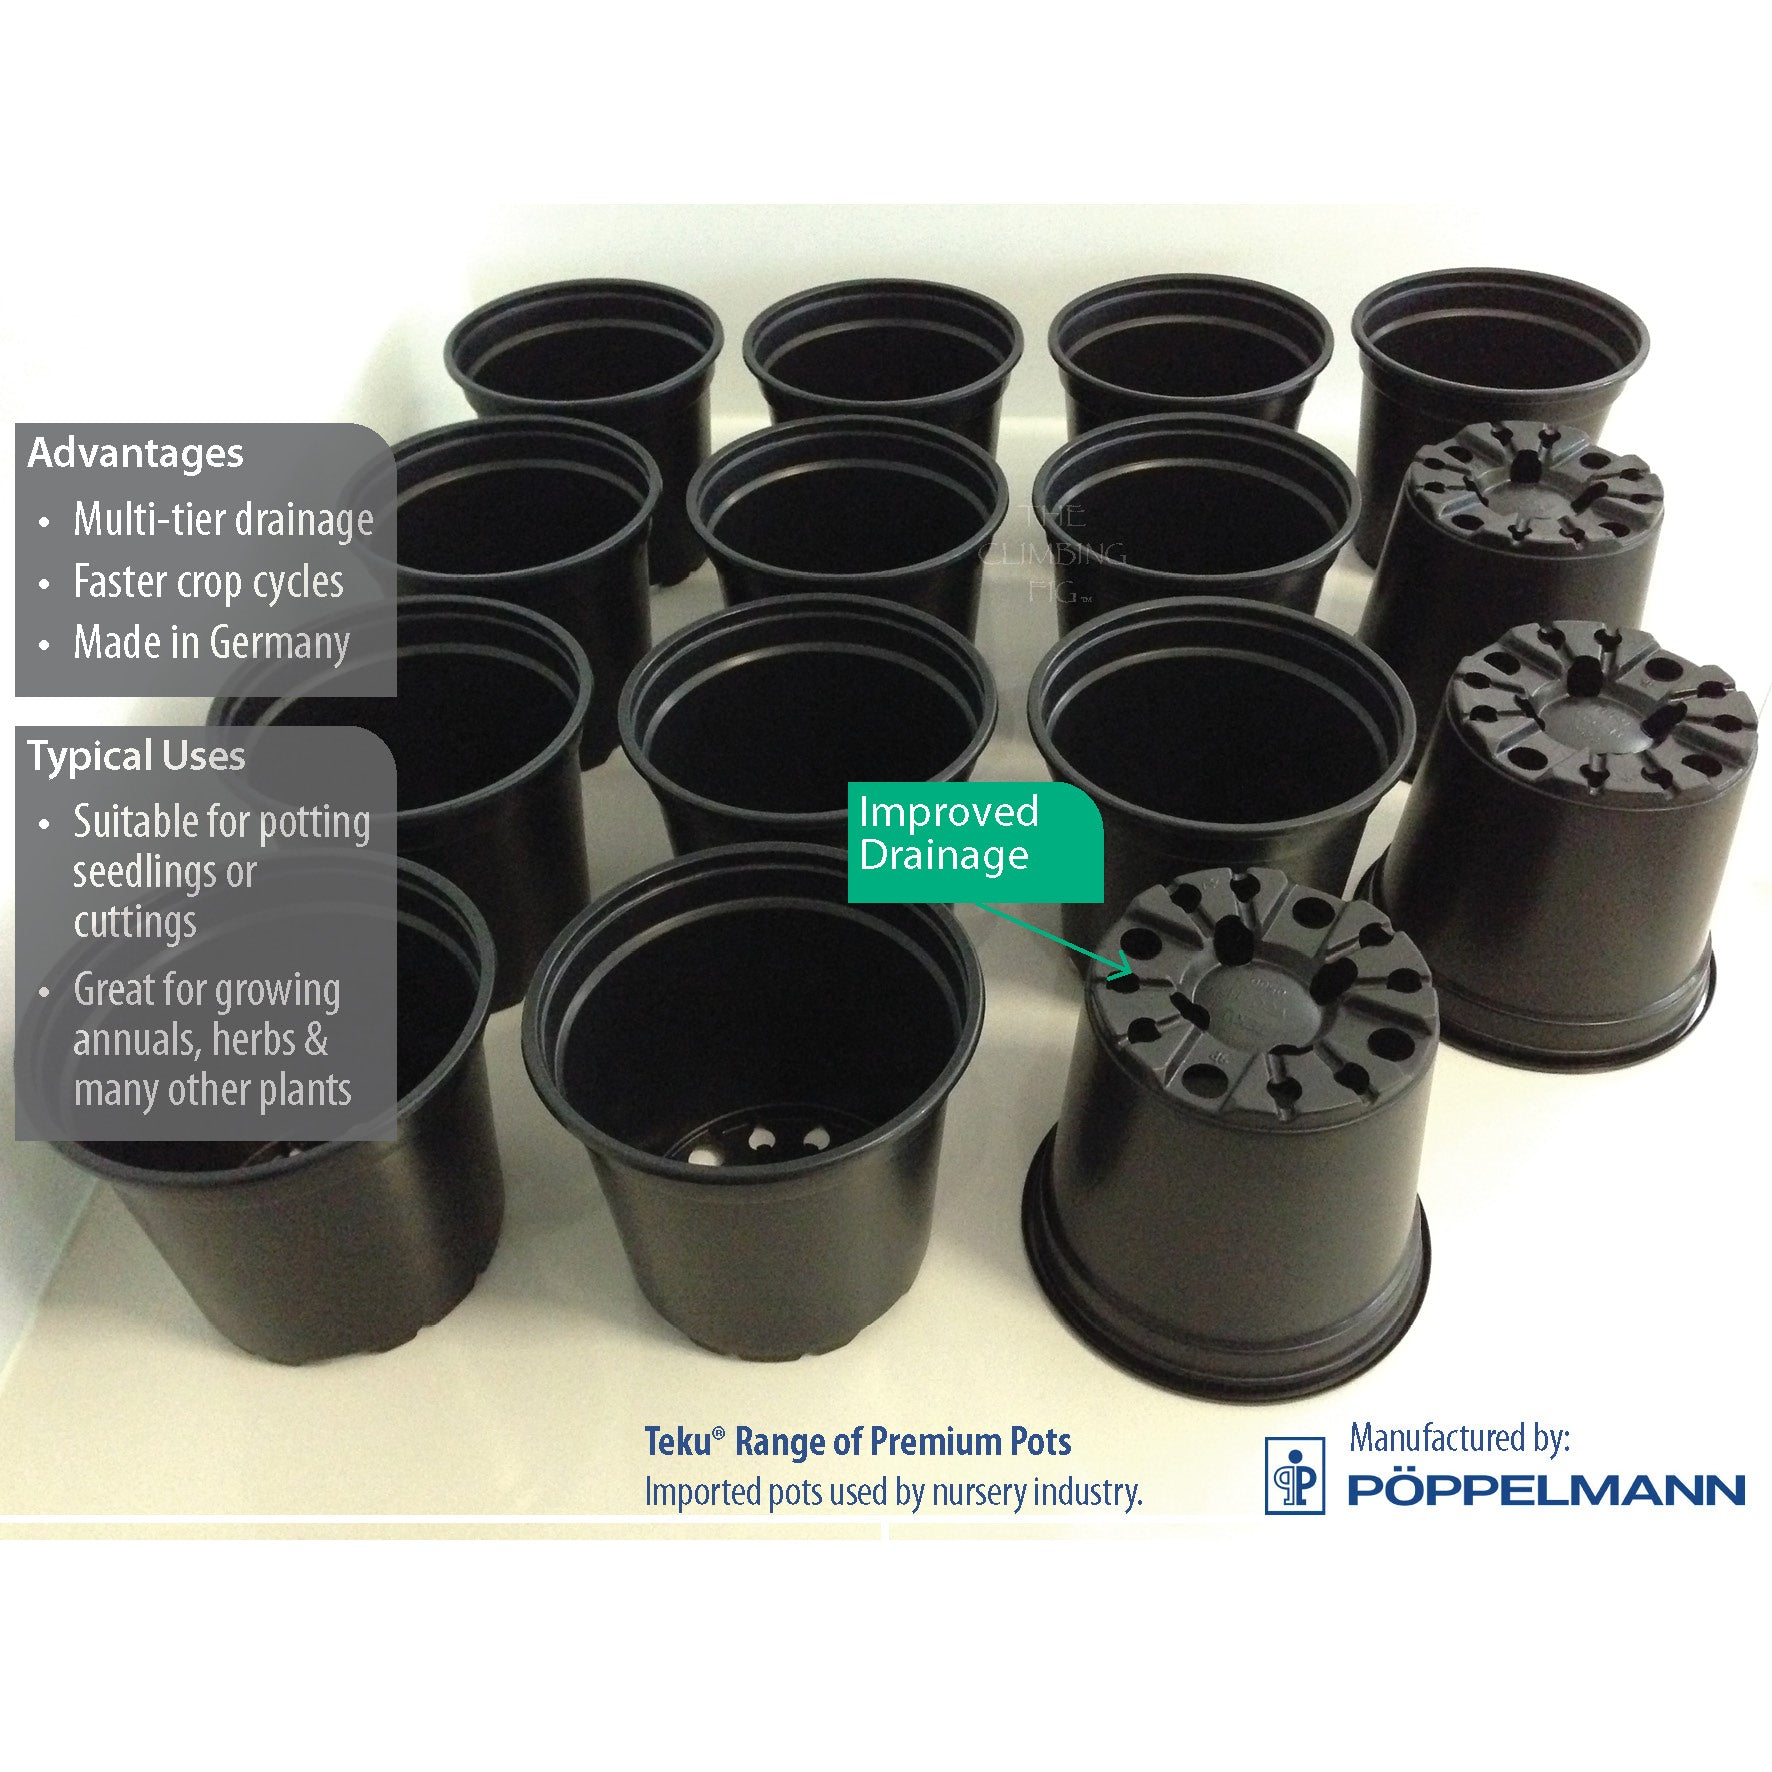 Teku BLACK Plastic Pots. 100mm, 120mm, 130mm, 150mm. Pot seedlings plants